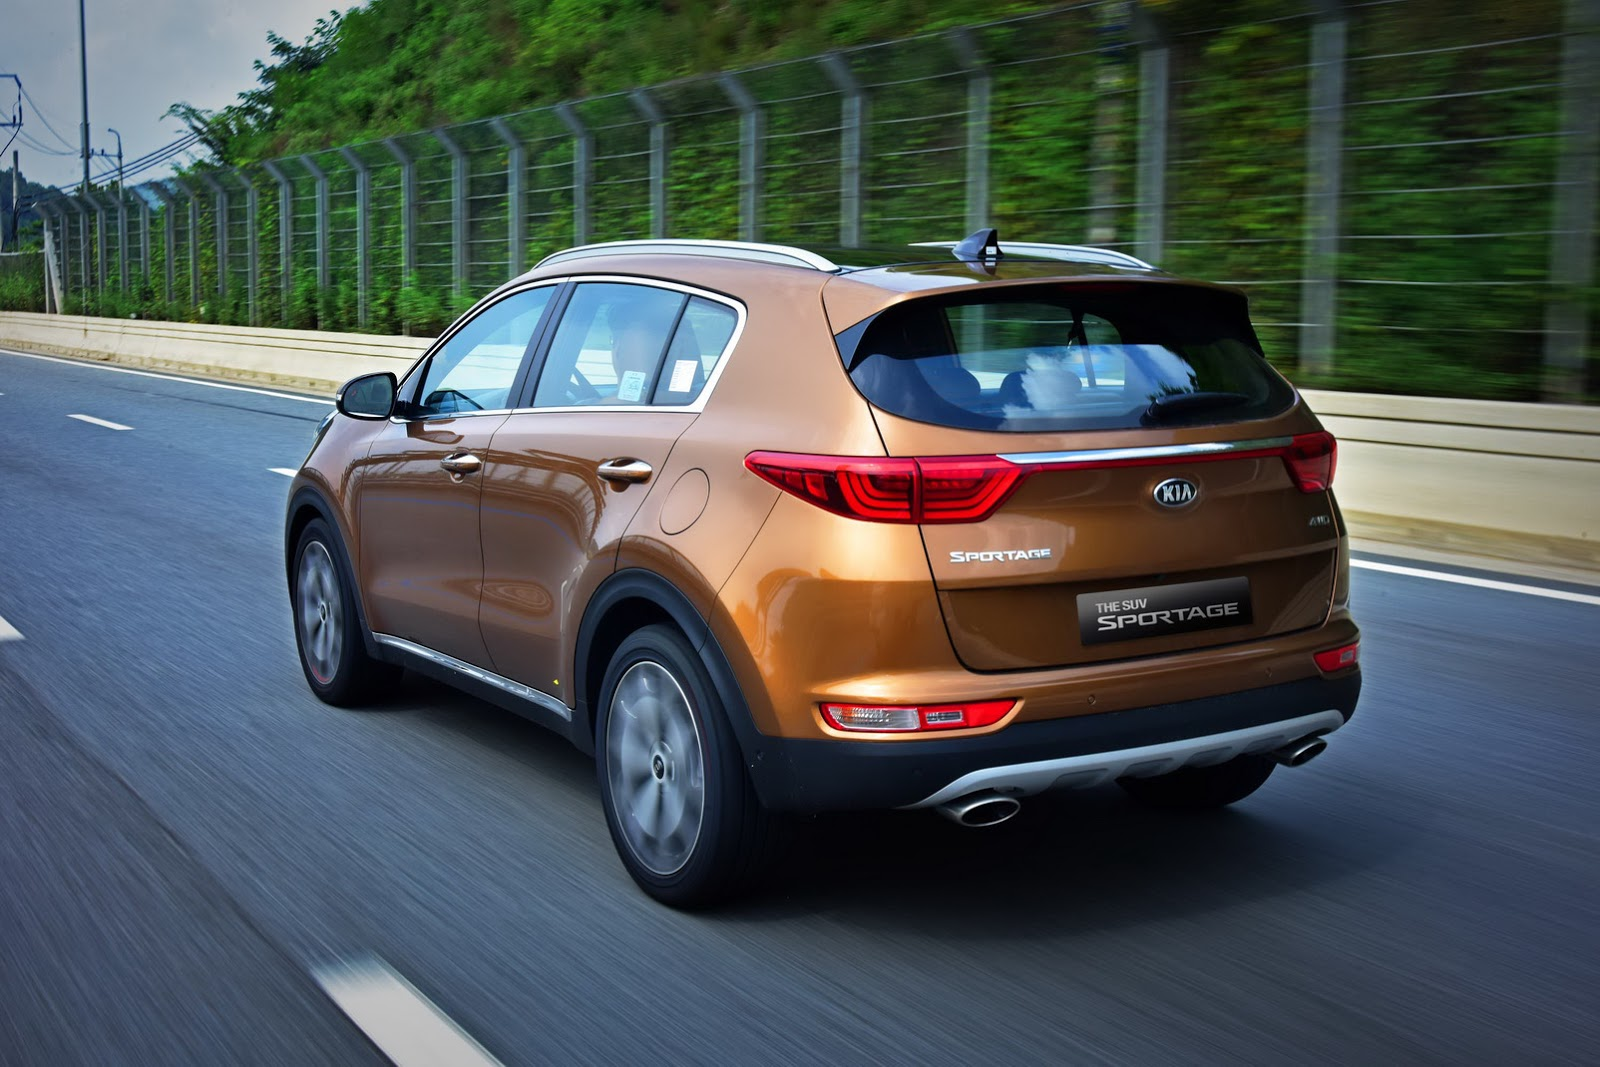 kia sportage gpl forum problemi 408inc blog